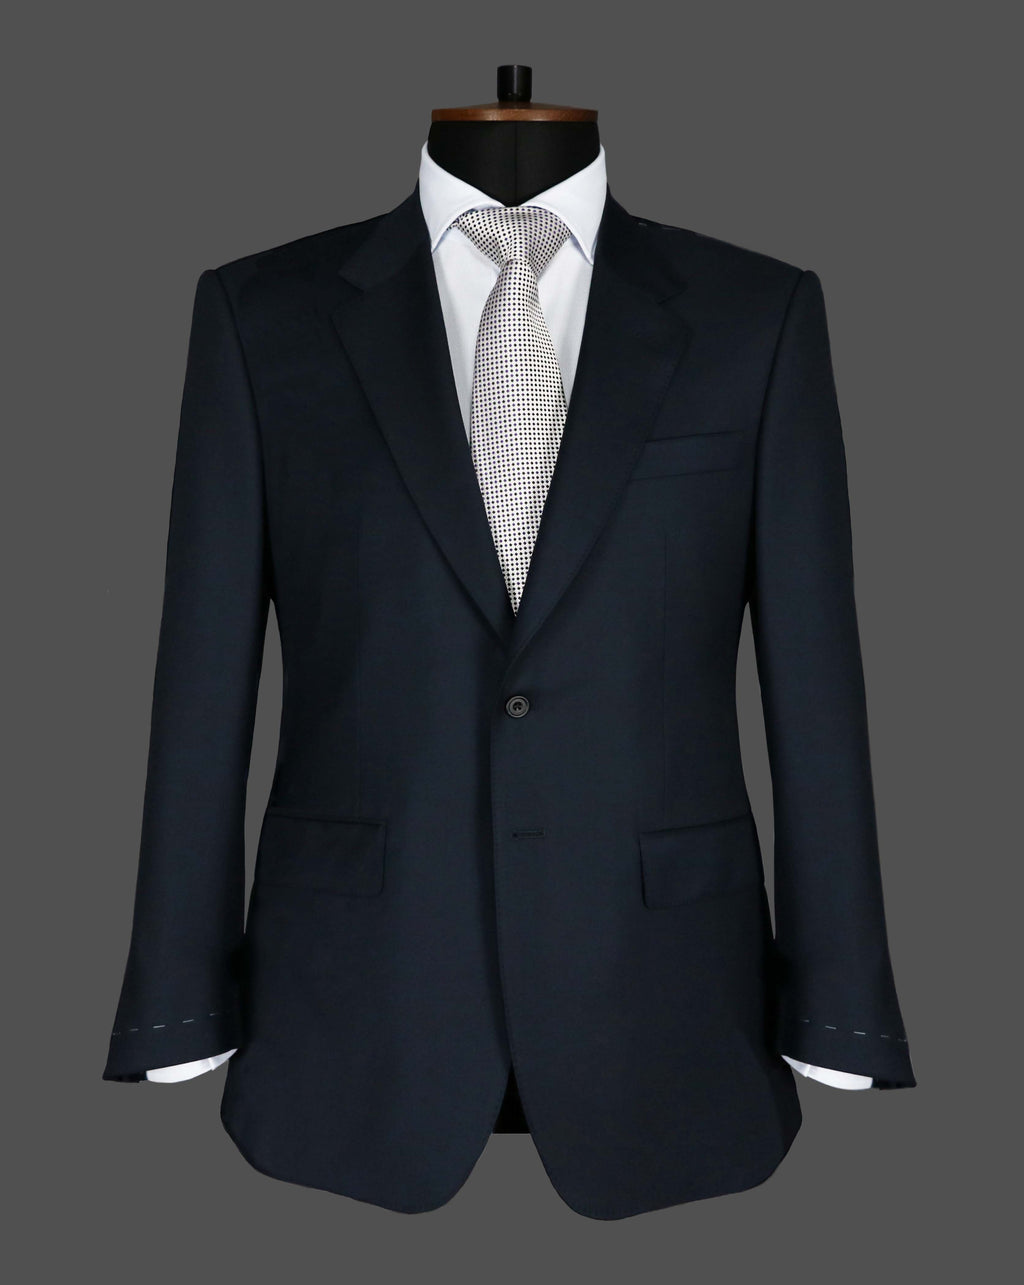 TLA042 - Plain Navy Suit